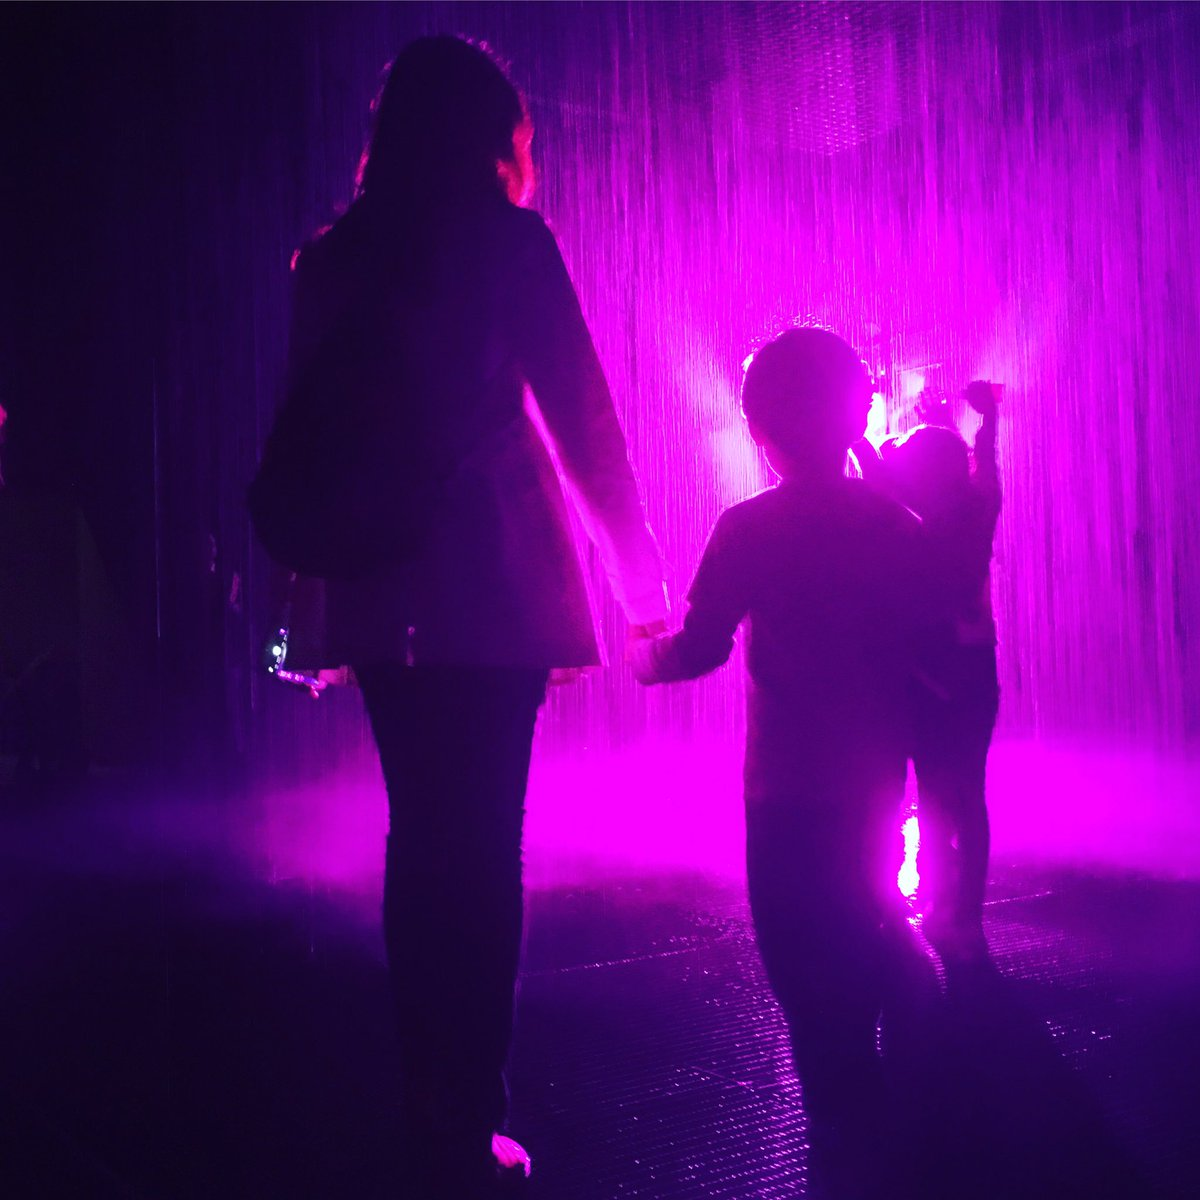 #lacmamuseum with Gus.....#purplerain #rainroom  in honor of #prince https://t.co/Zznmkx0GH4